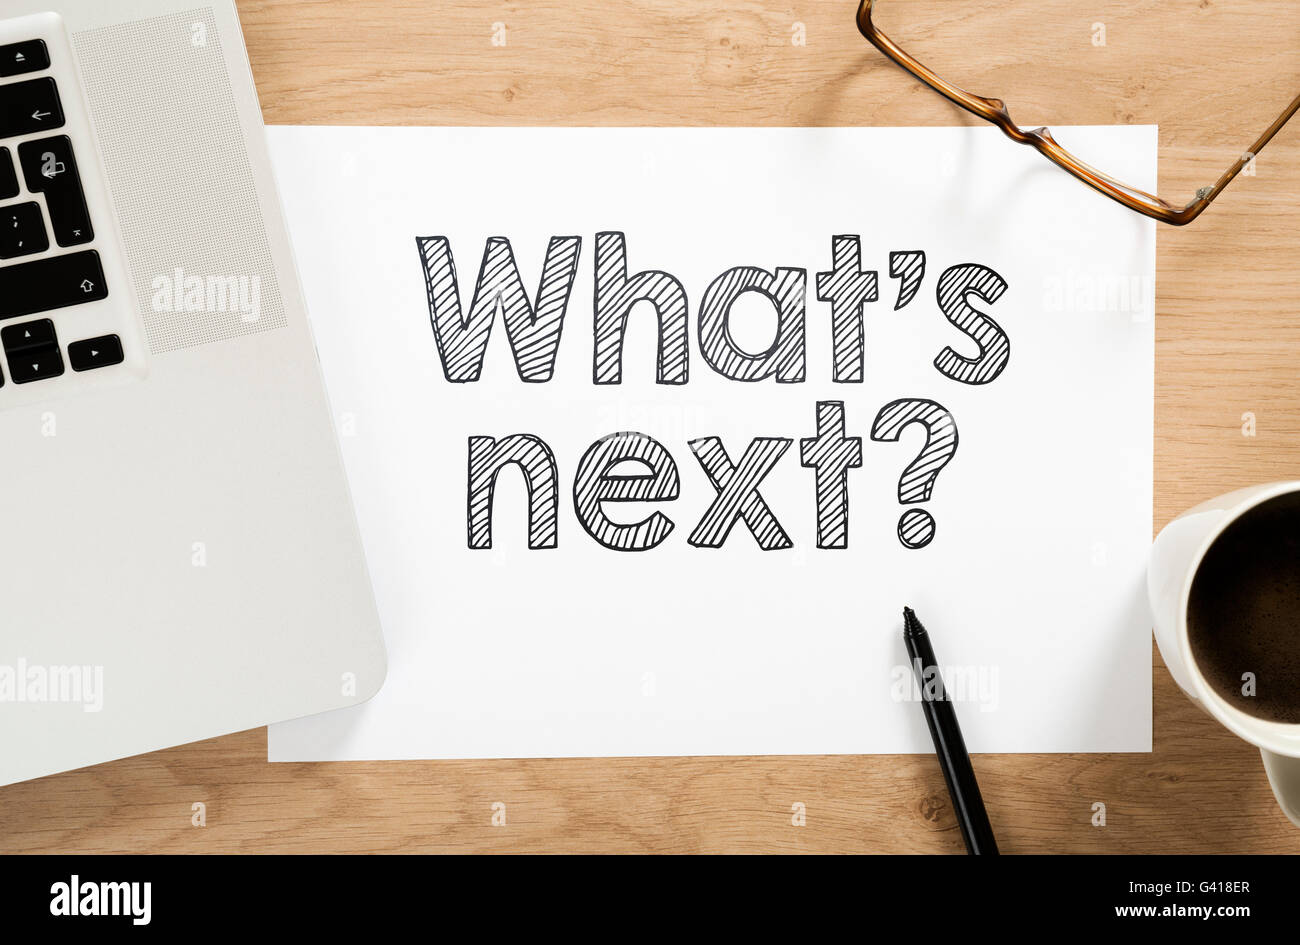 'what's next?' written paper on the office desk - Stock Image